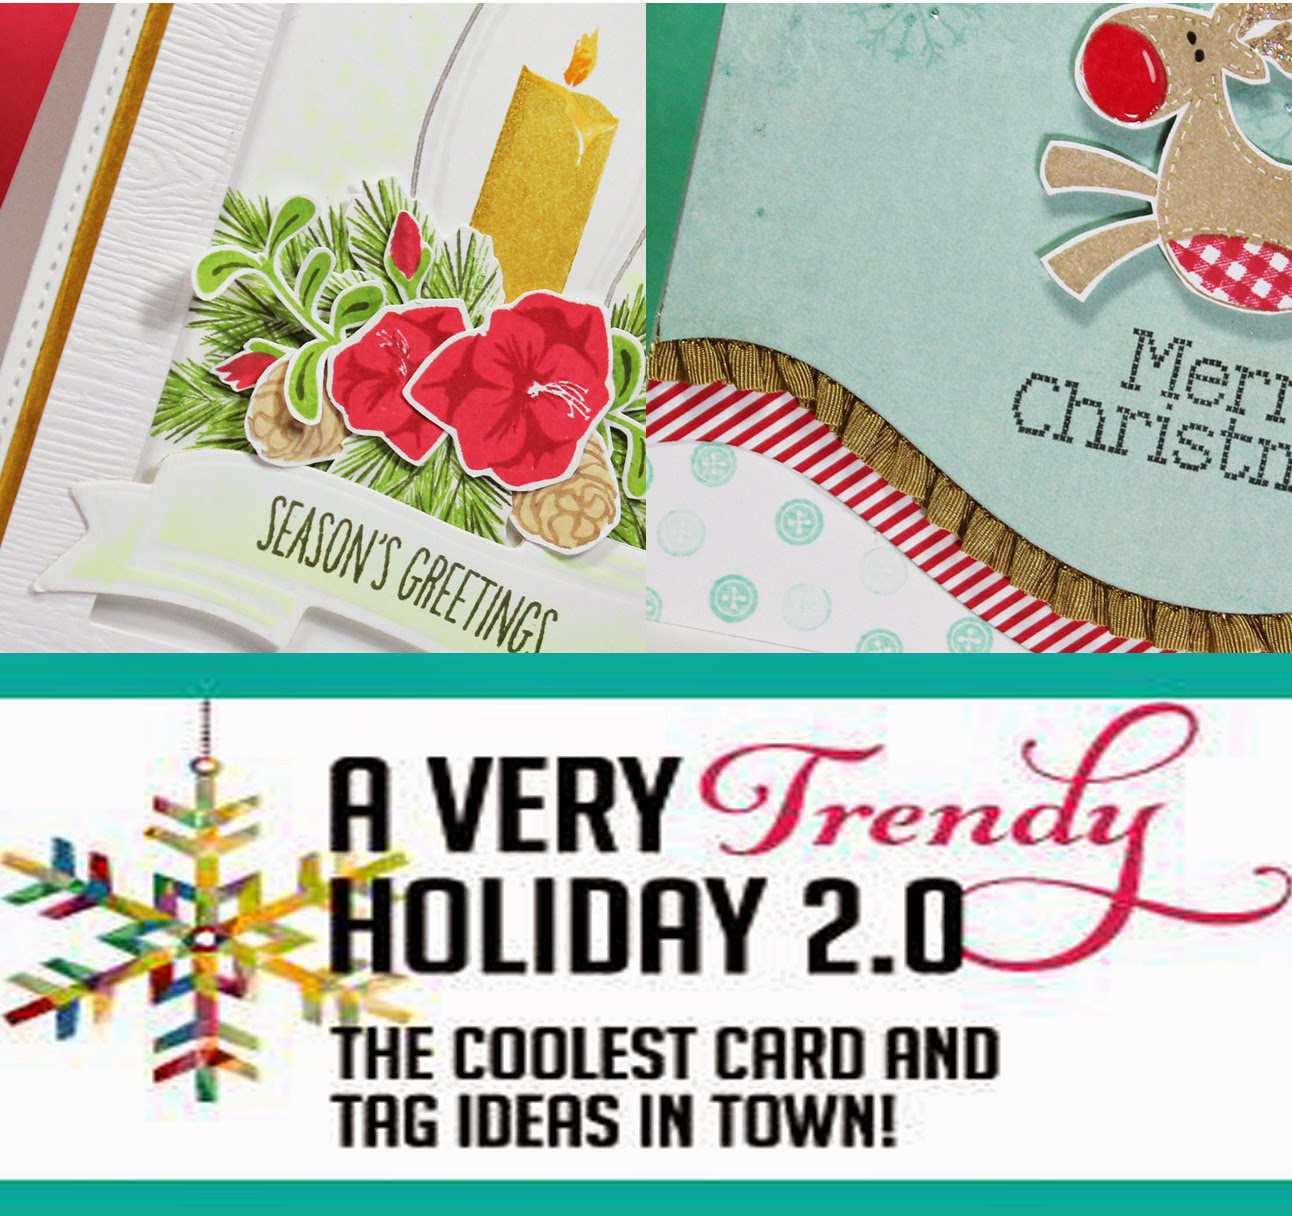 A Very Trendy Holiday 2.0 Card Class Examples by Allison Cope